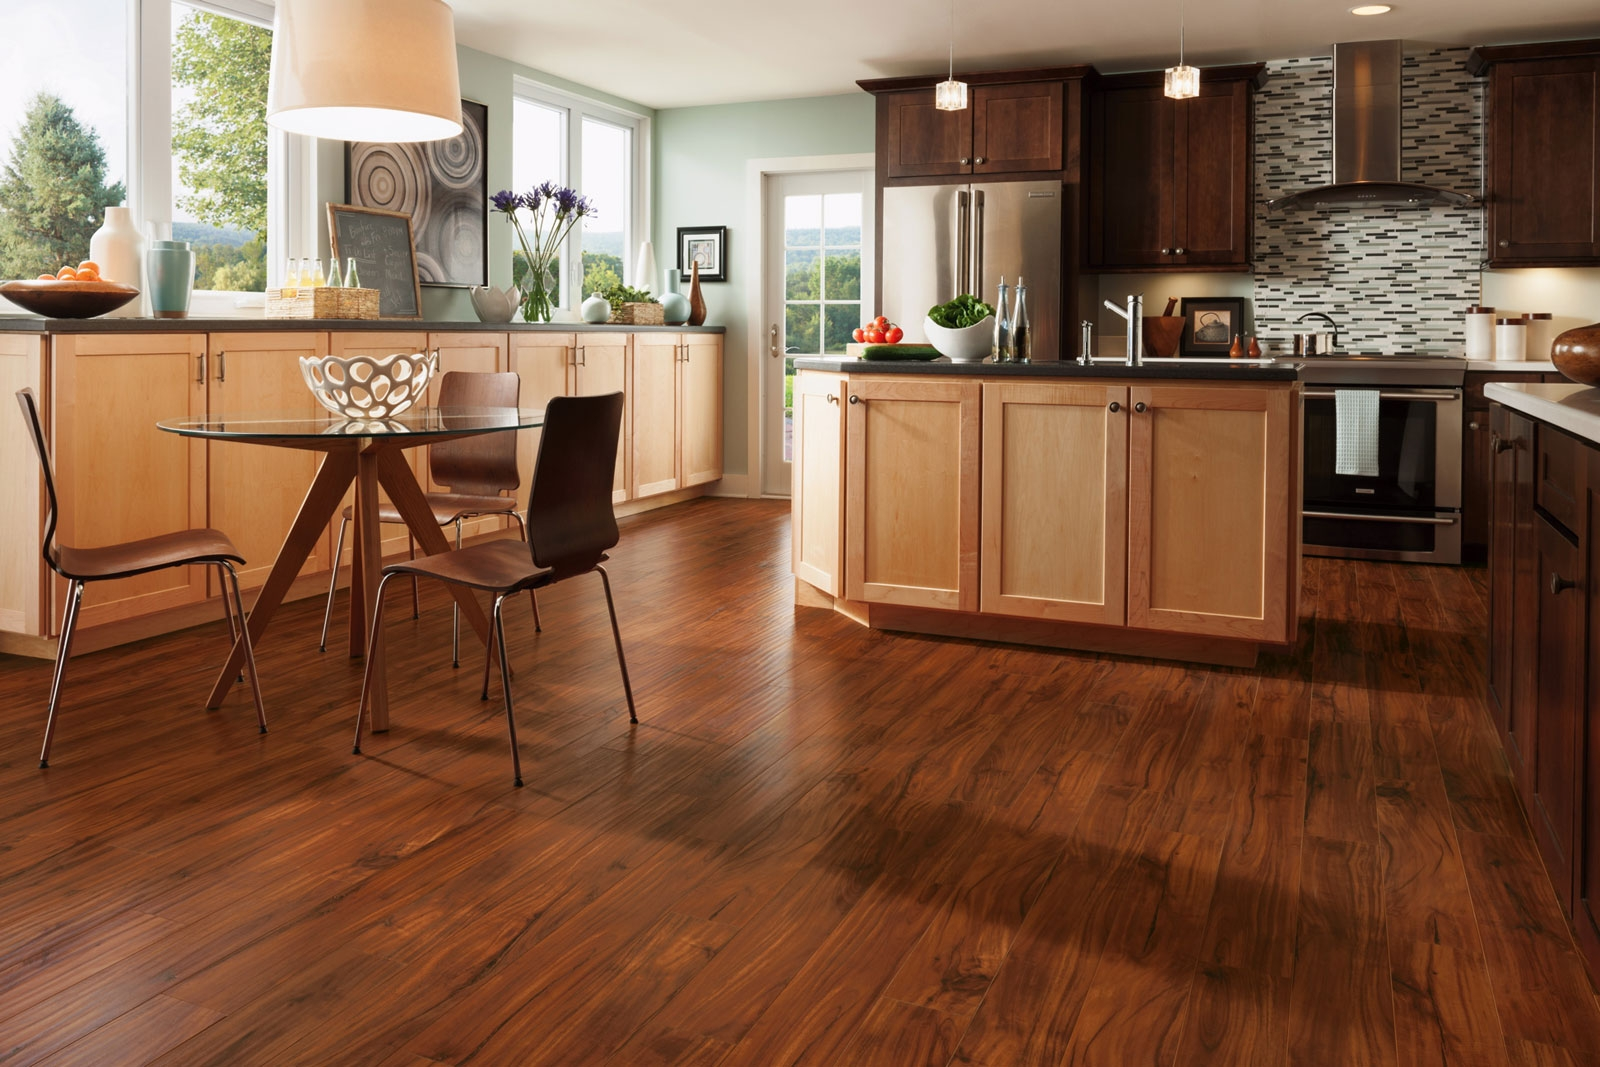 Permalink to Best Wood Laminate Flooring For Kitchen